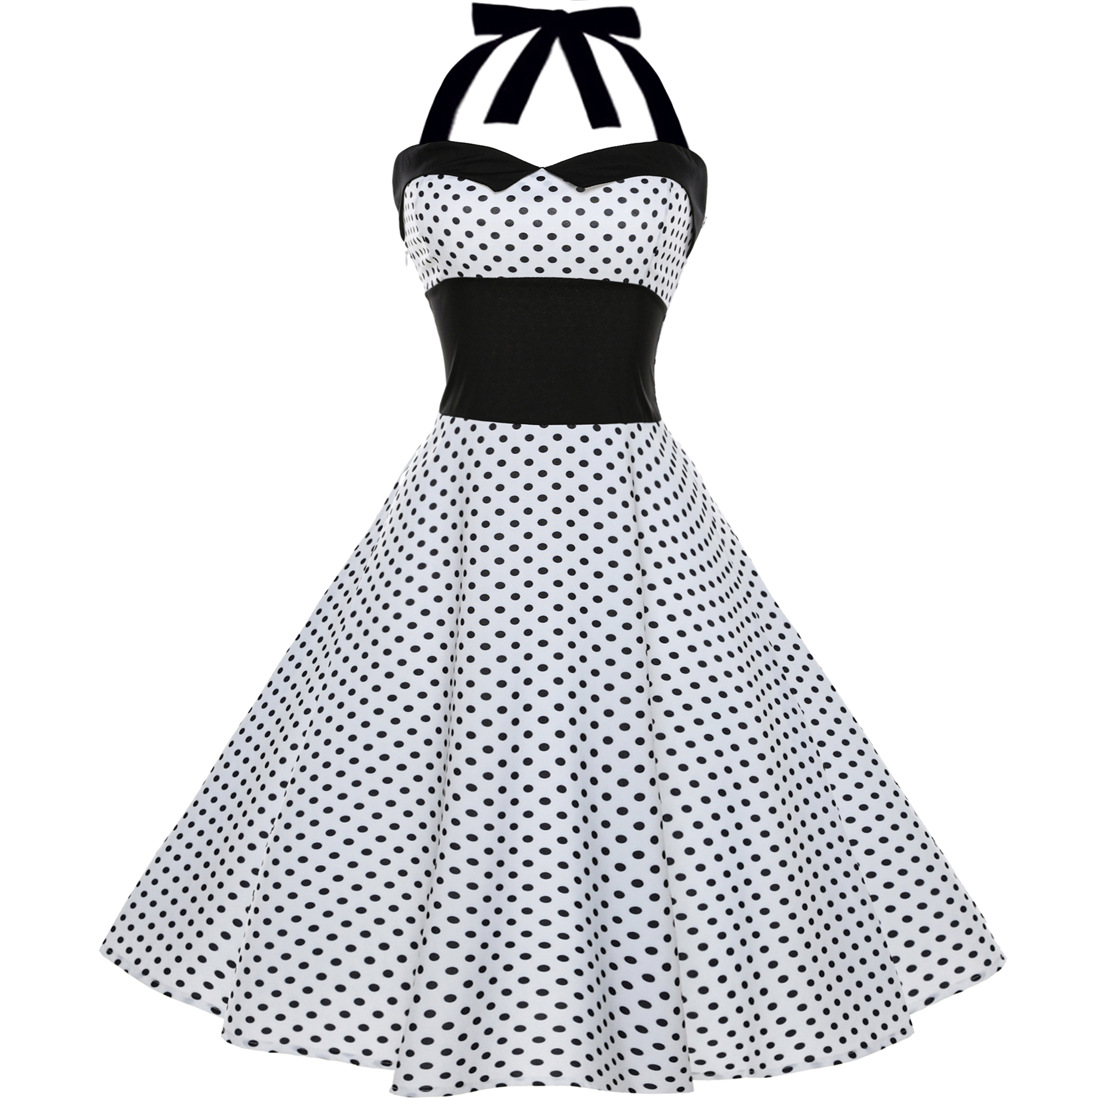 Vintage Polka Dot/Floral Dress Halter Backless Big Swing Women Casual Party Dress 1#